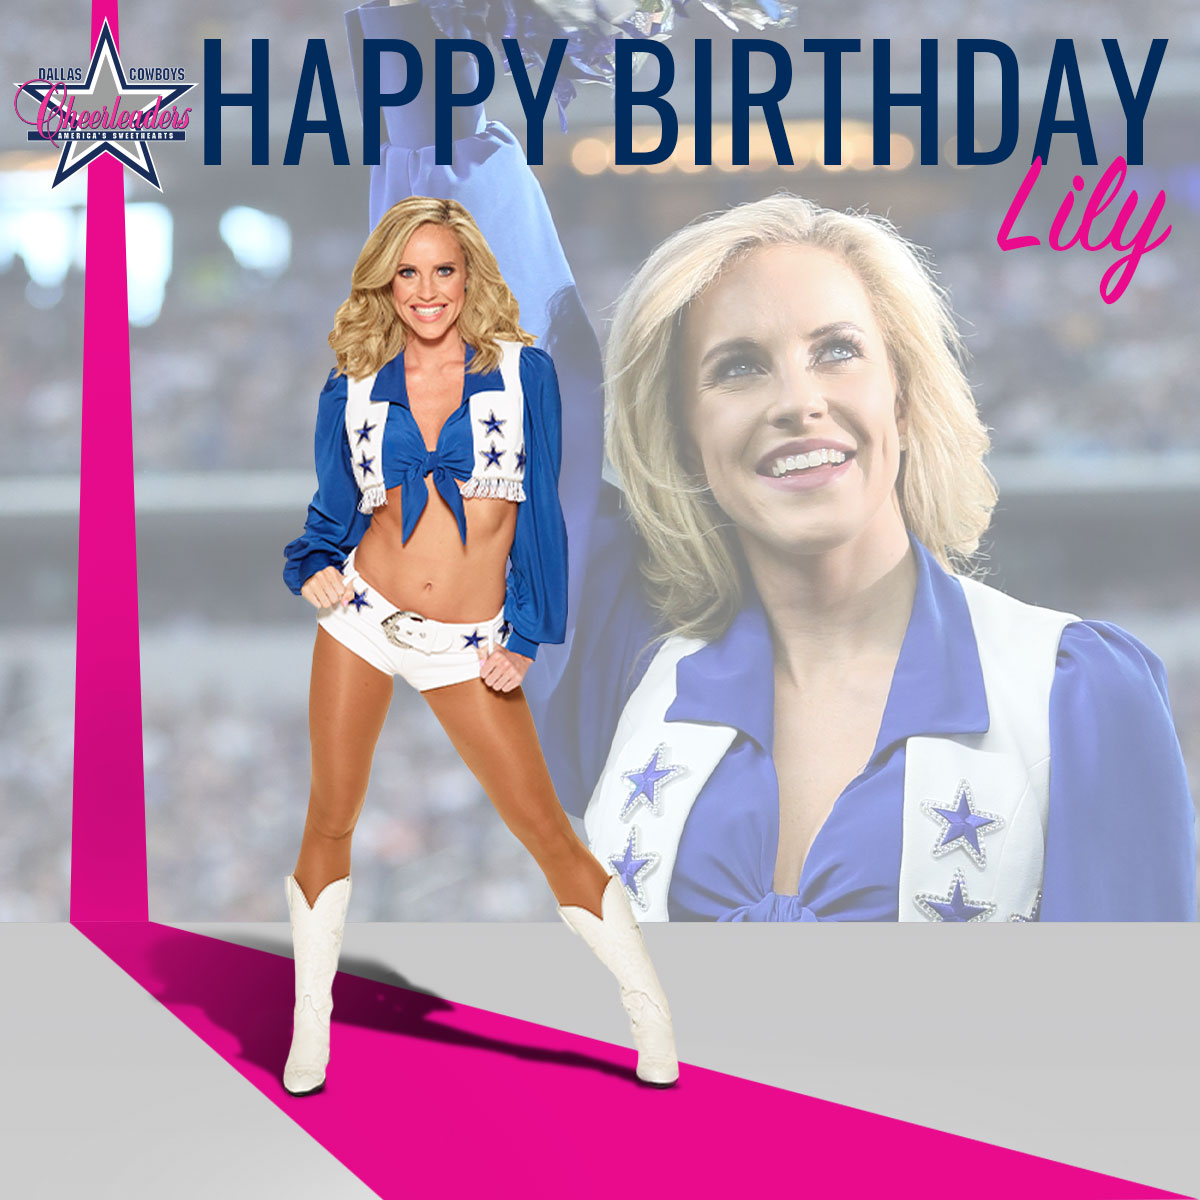 Happy birthday to @DCC_Lily! We hope you have a great day and an even better year! Celebrate with Lily by leaving her birthday wishes in the comments below. 🎉🎁🎈 https://t.co/5Tivap2GXz